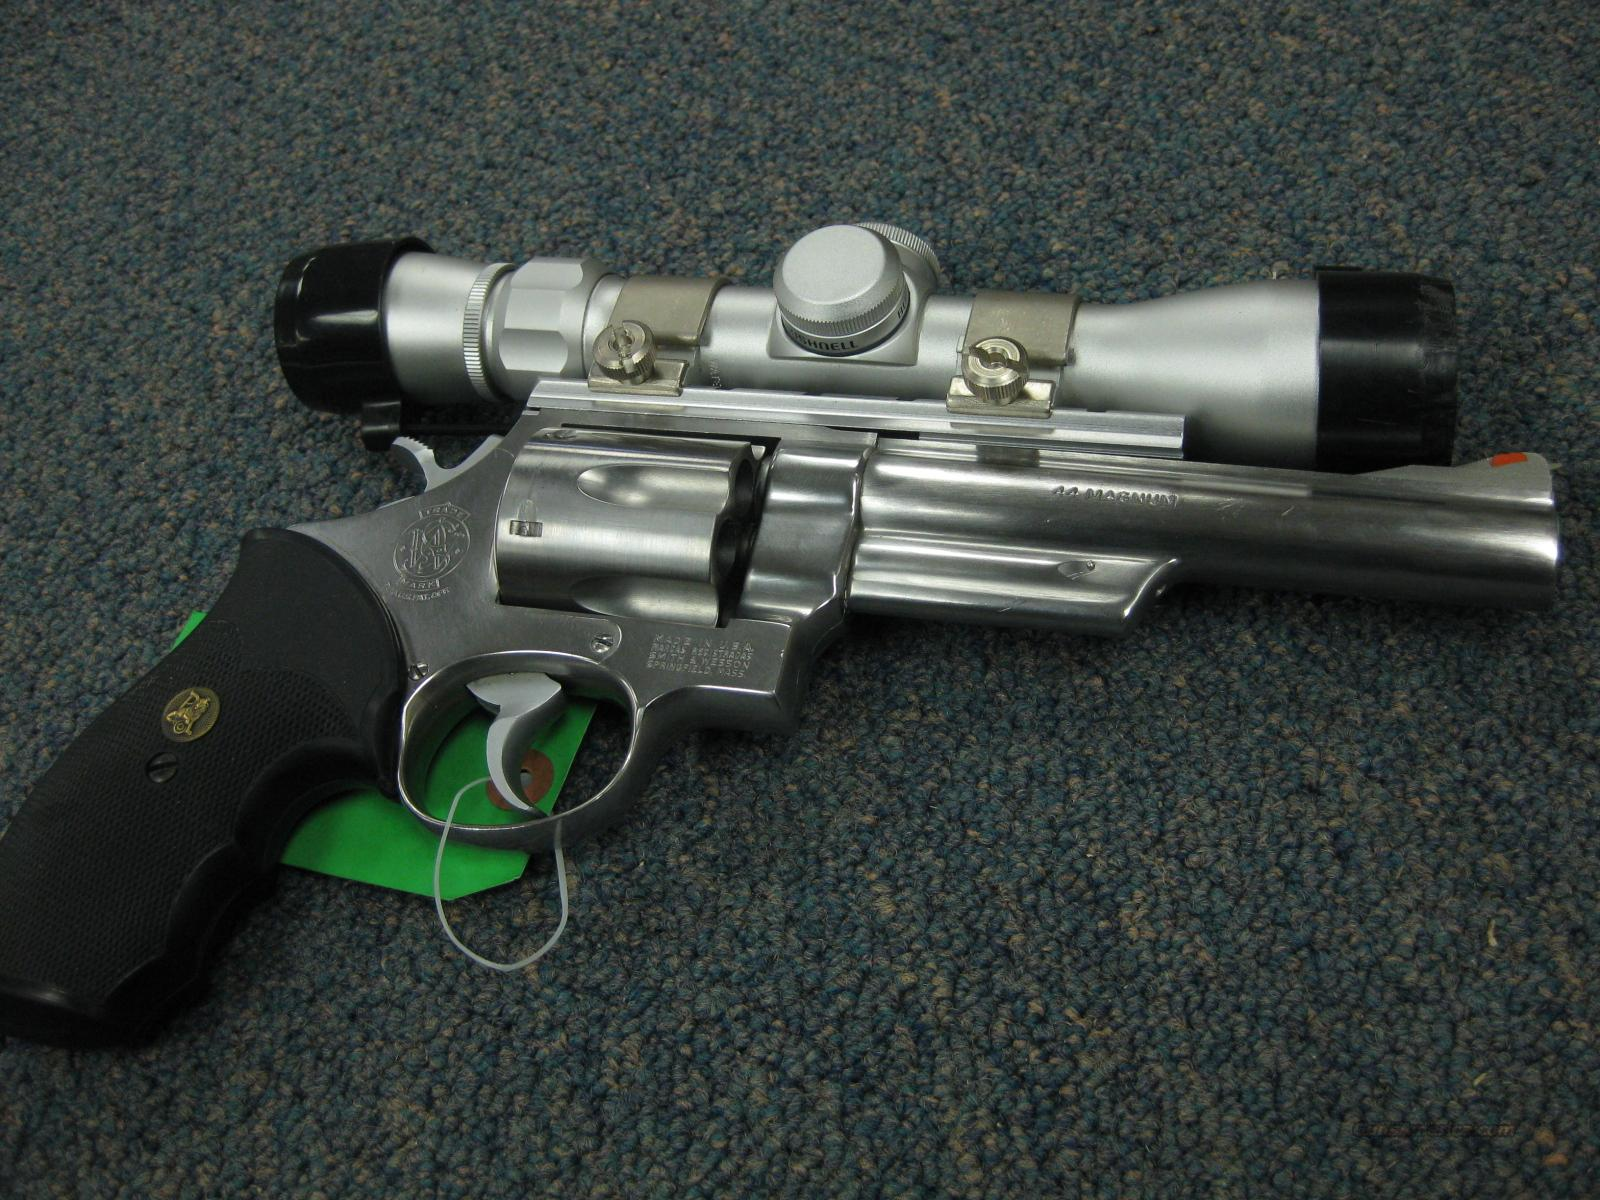 SMITH & WESSON 629 .44MAG. 6-INCH W/SCOPE - EXCELLENT !  Guns > Pistols > Smith & Wesson Revolvers > Model 629